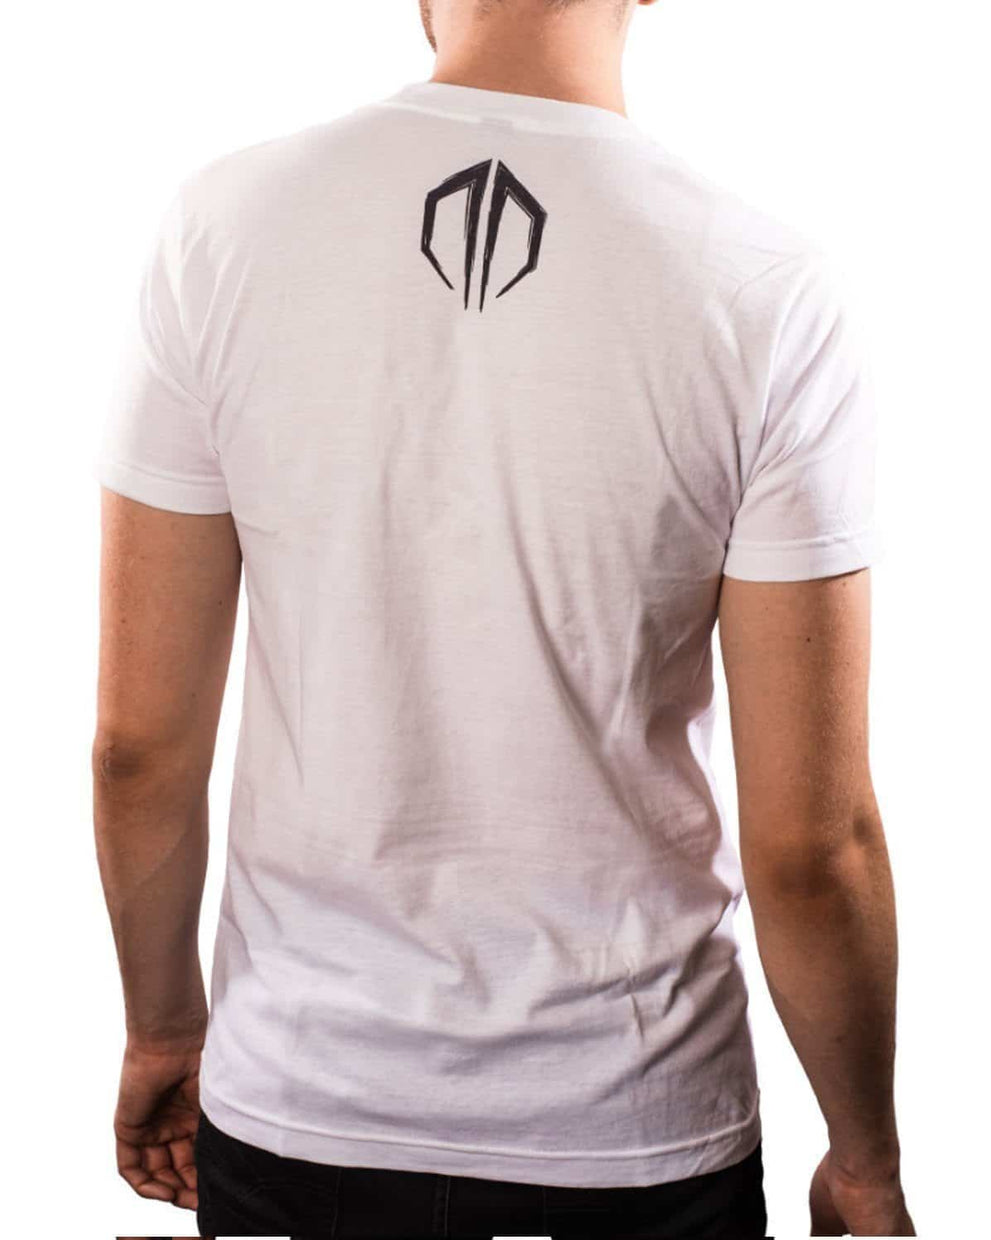 Destroid 3-Up Glow in the Dark Unisex T-Shirt